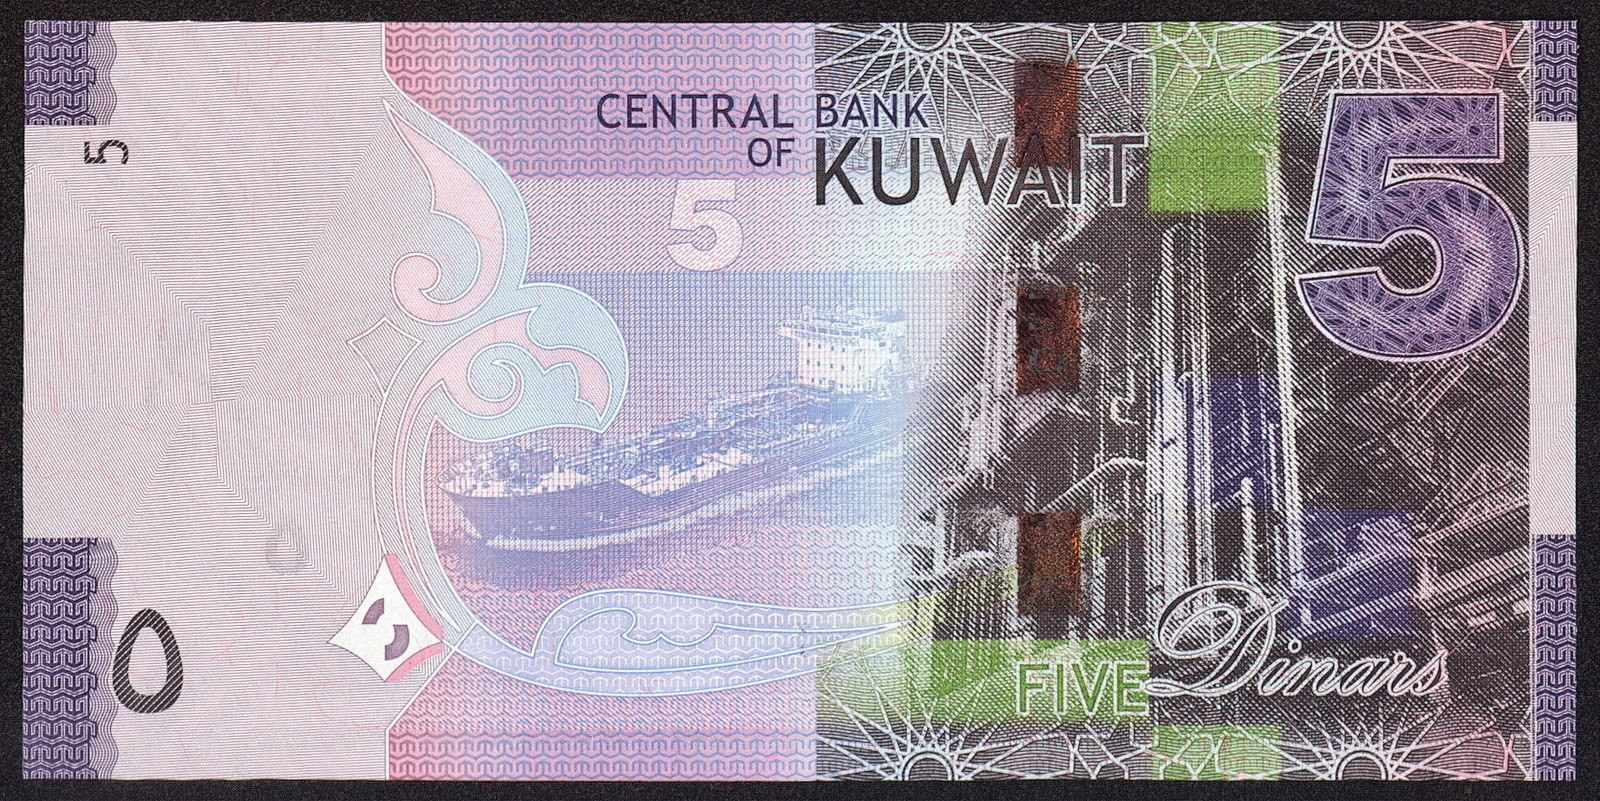 Kuwait money currency 5 Dinars banknote 2014